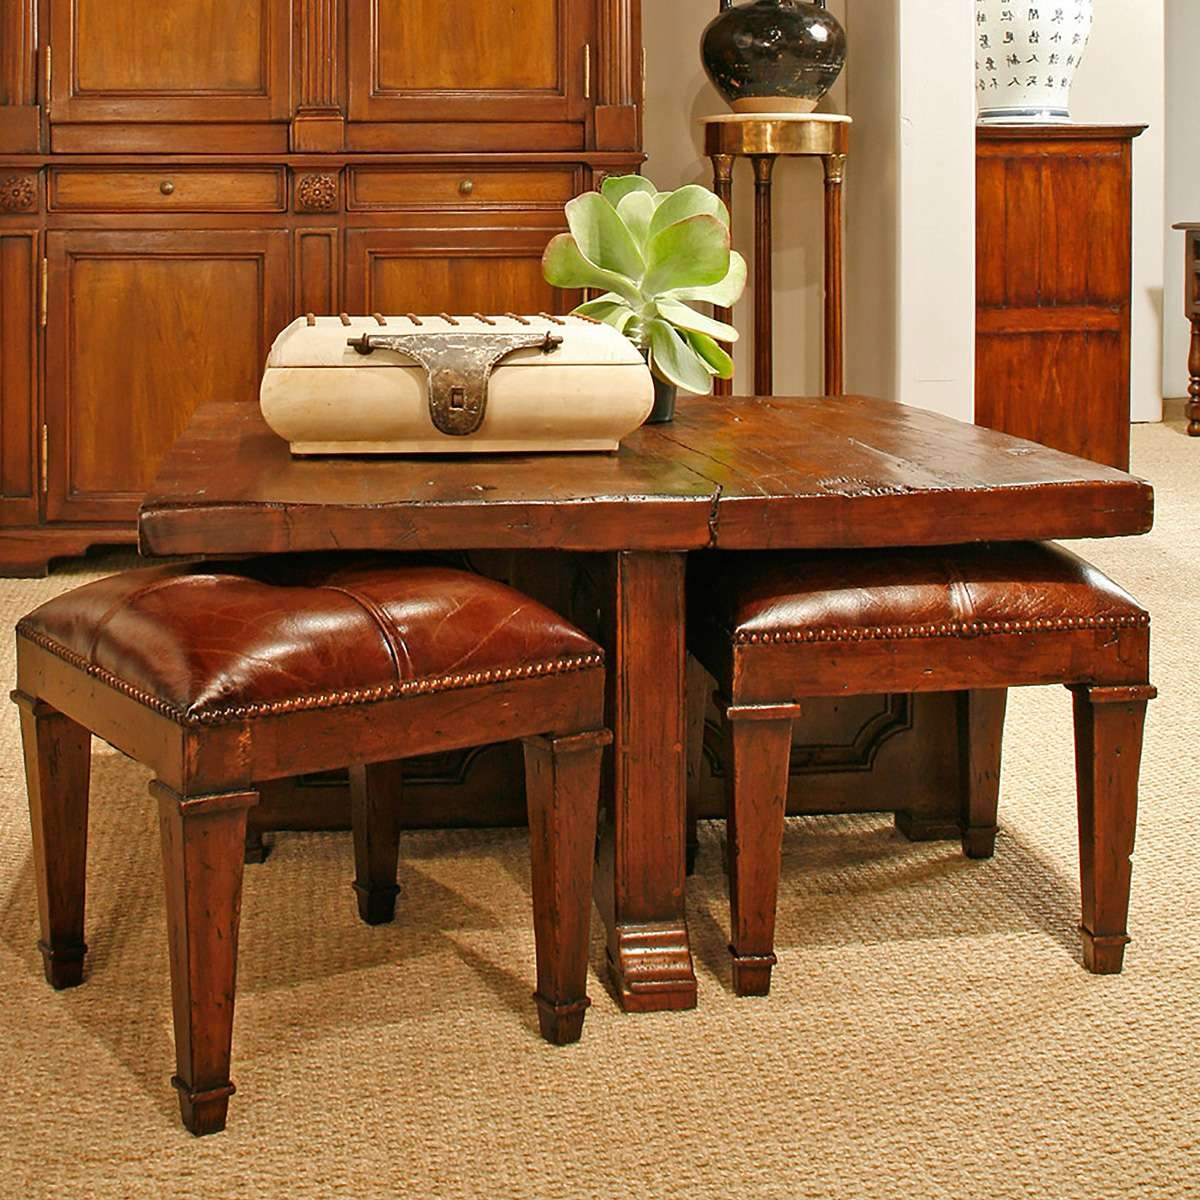 Coffee Table With 4 Nesting Stools – So That's Cool Regarding Most Recent Coffee Tables With Nesting Stools (View 4 of 20)